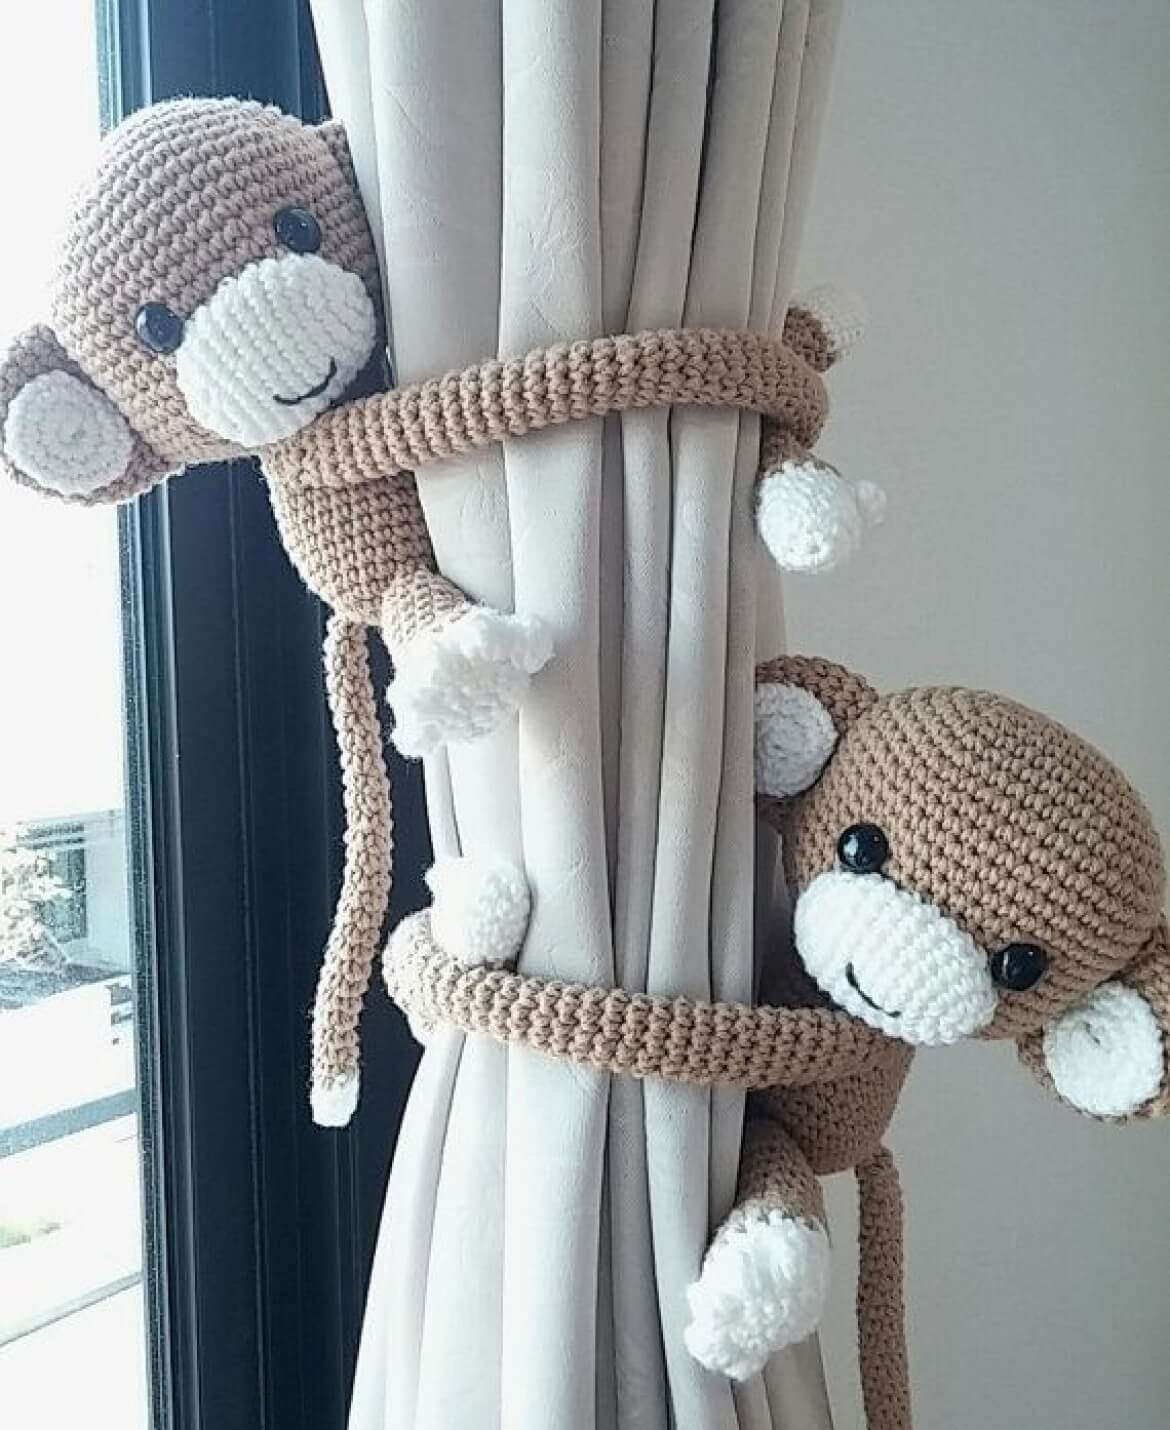 Crocheted Monkeys are a Sweet Touch